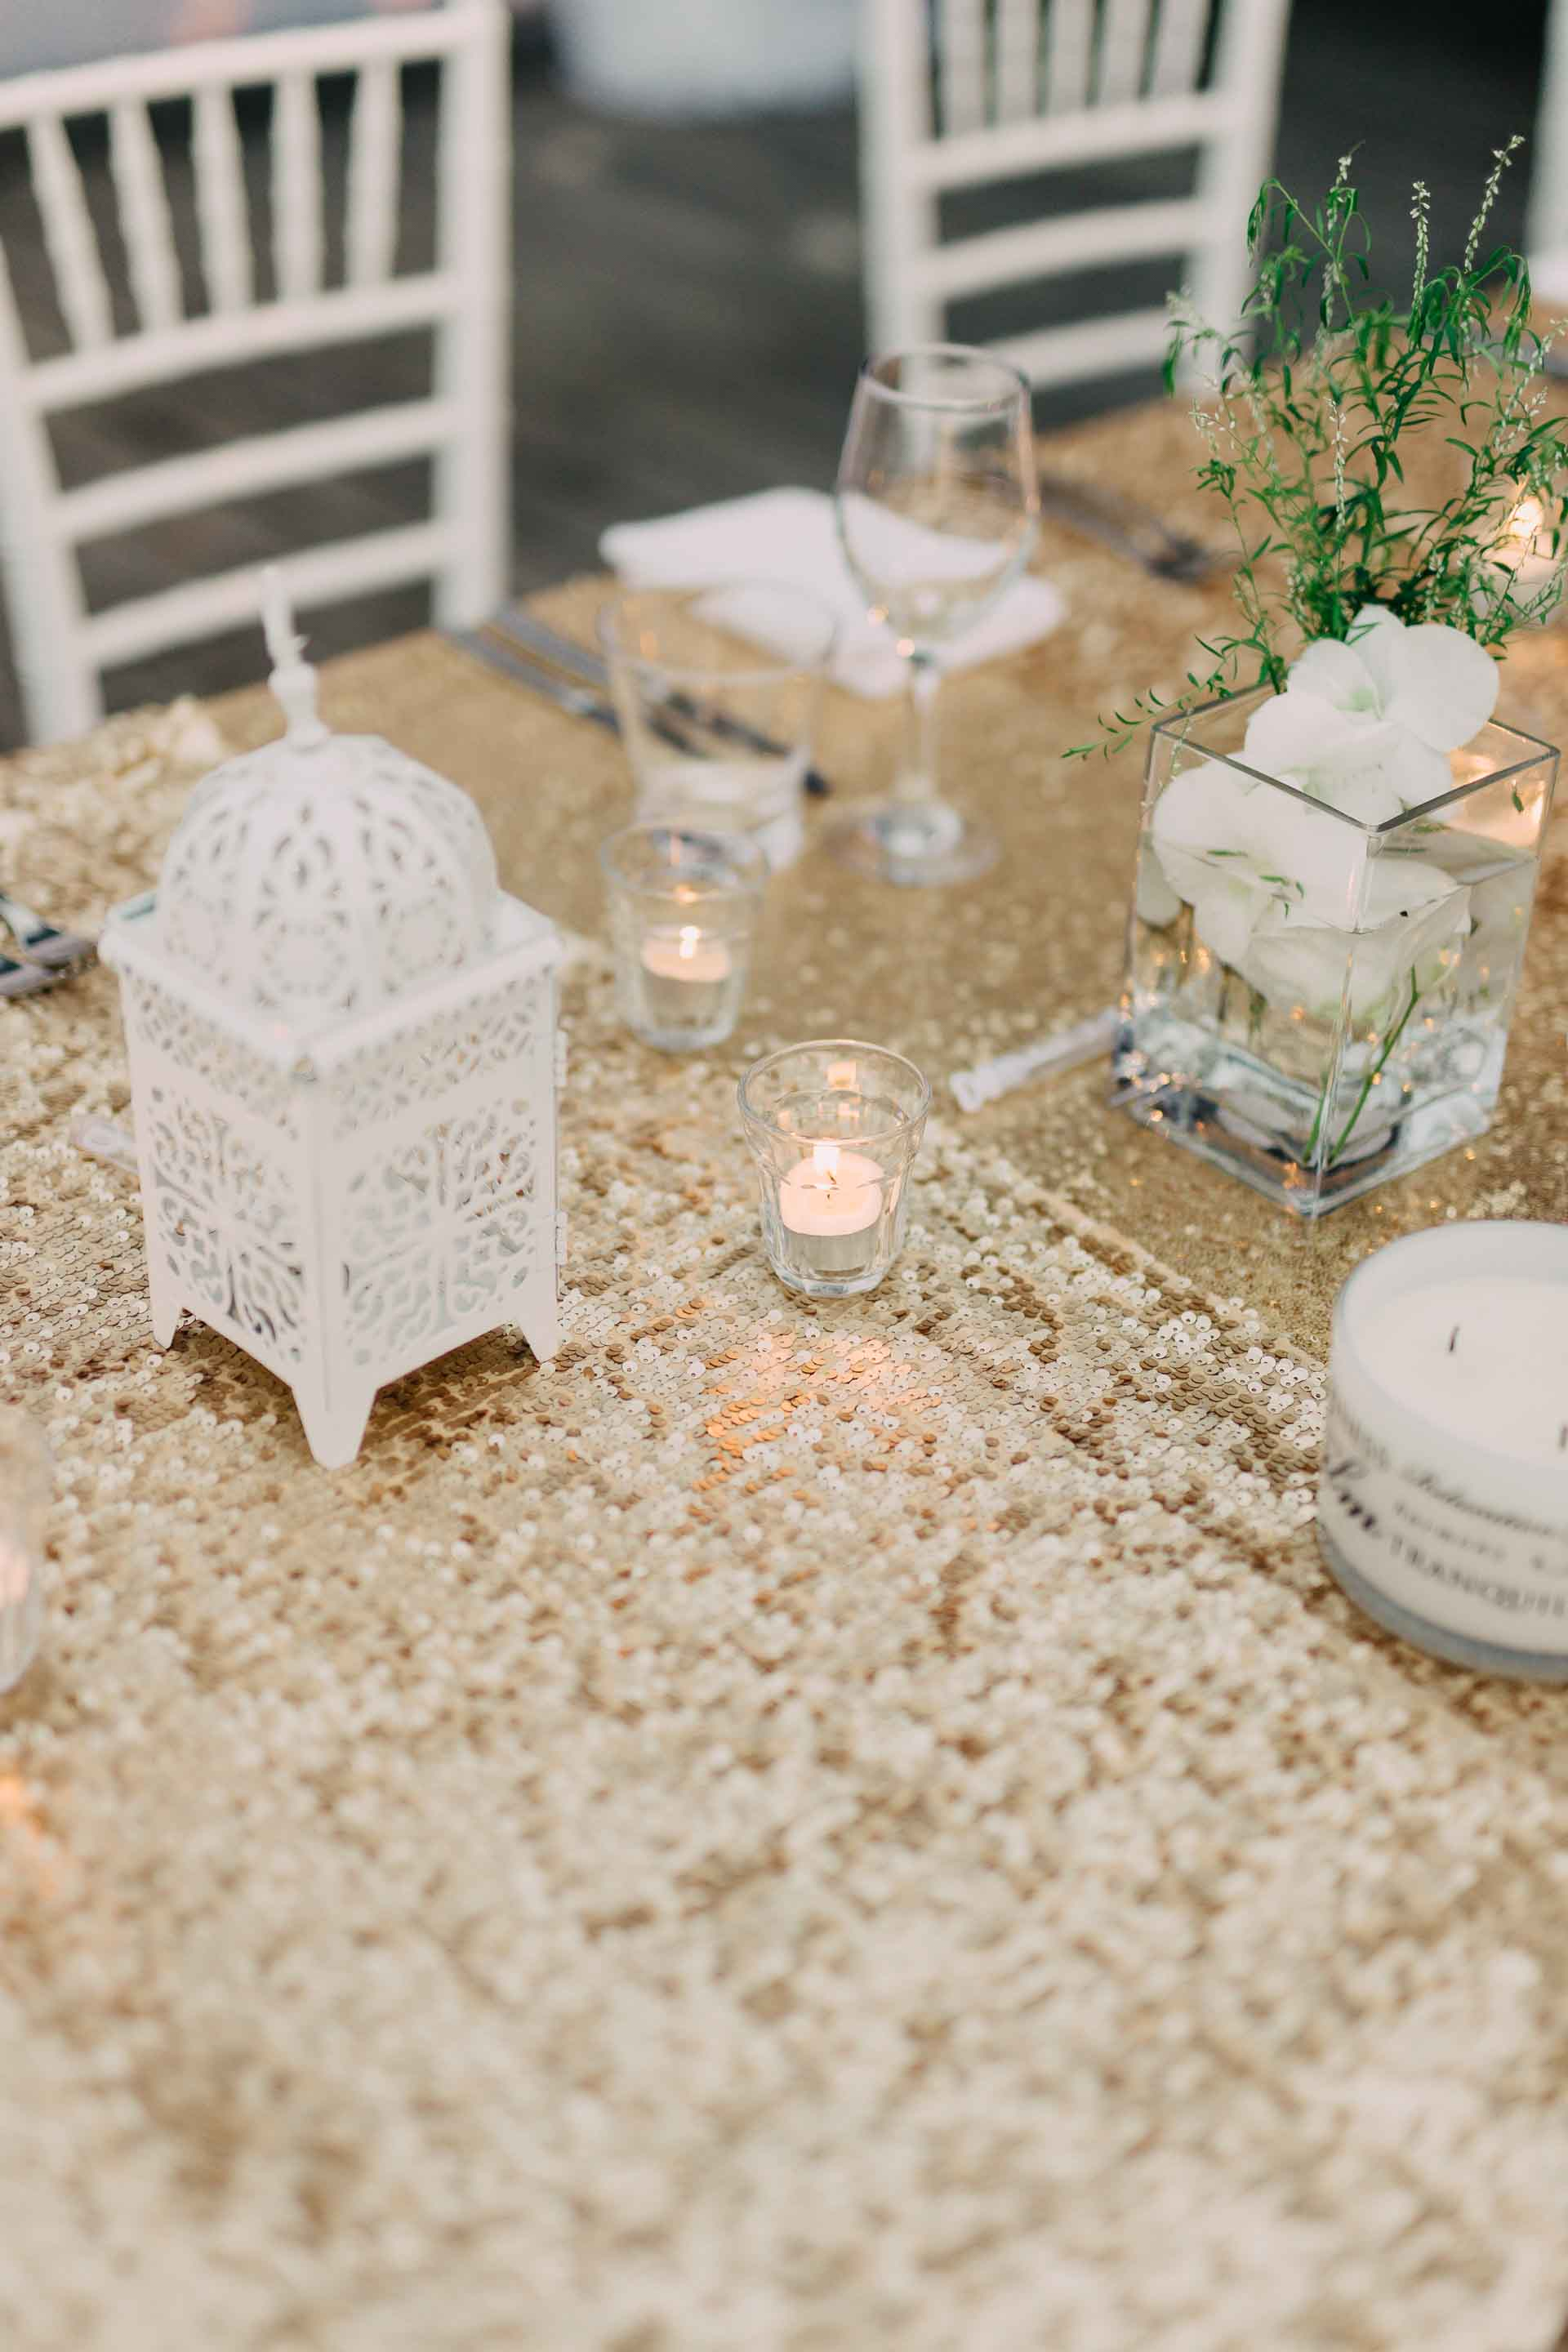 Beautiful white and golden themed Fiji wedding reception set up decorations decor at the Hilton